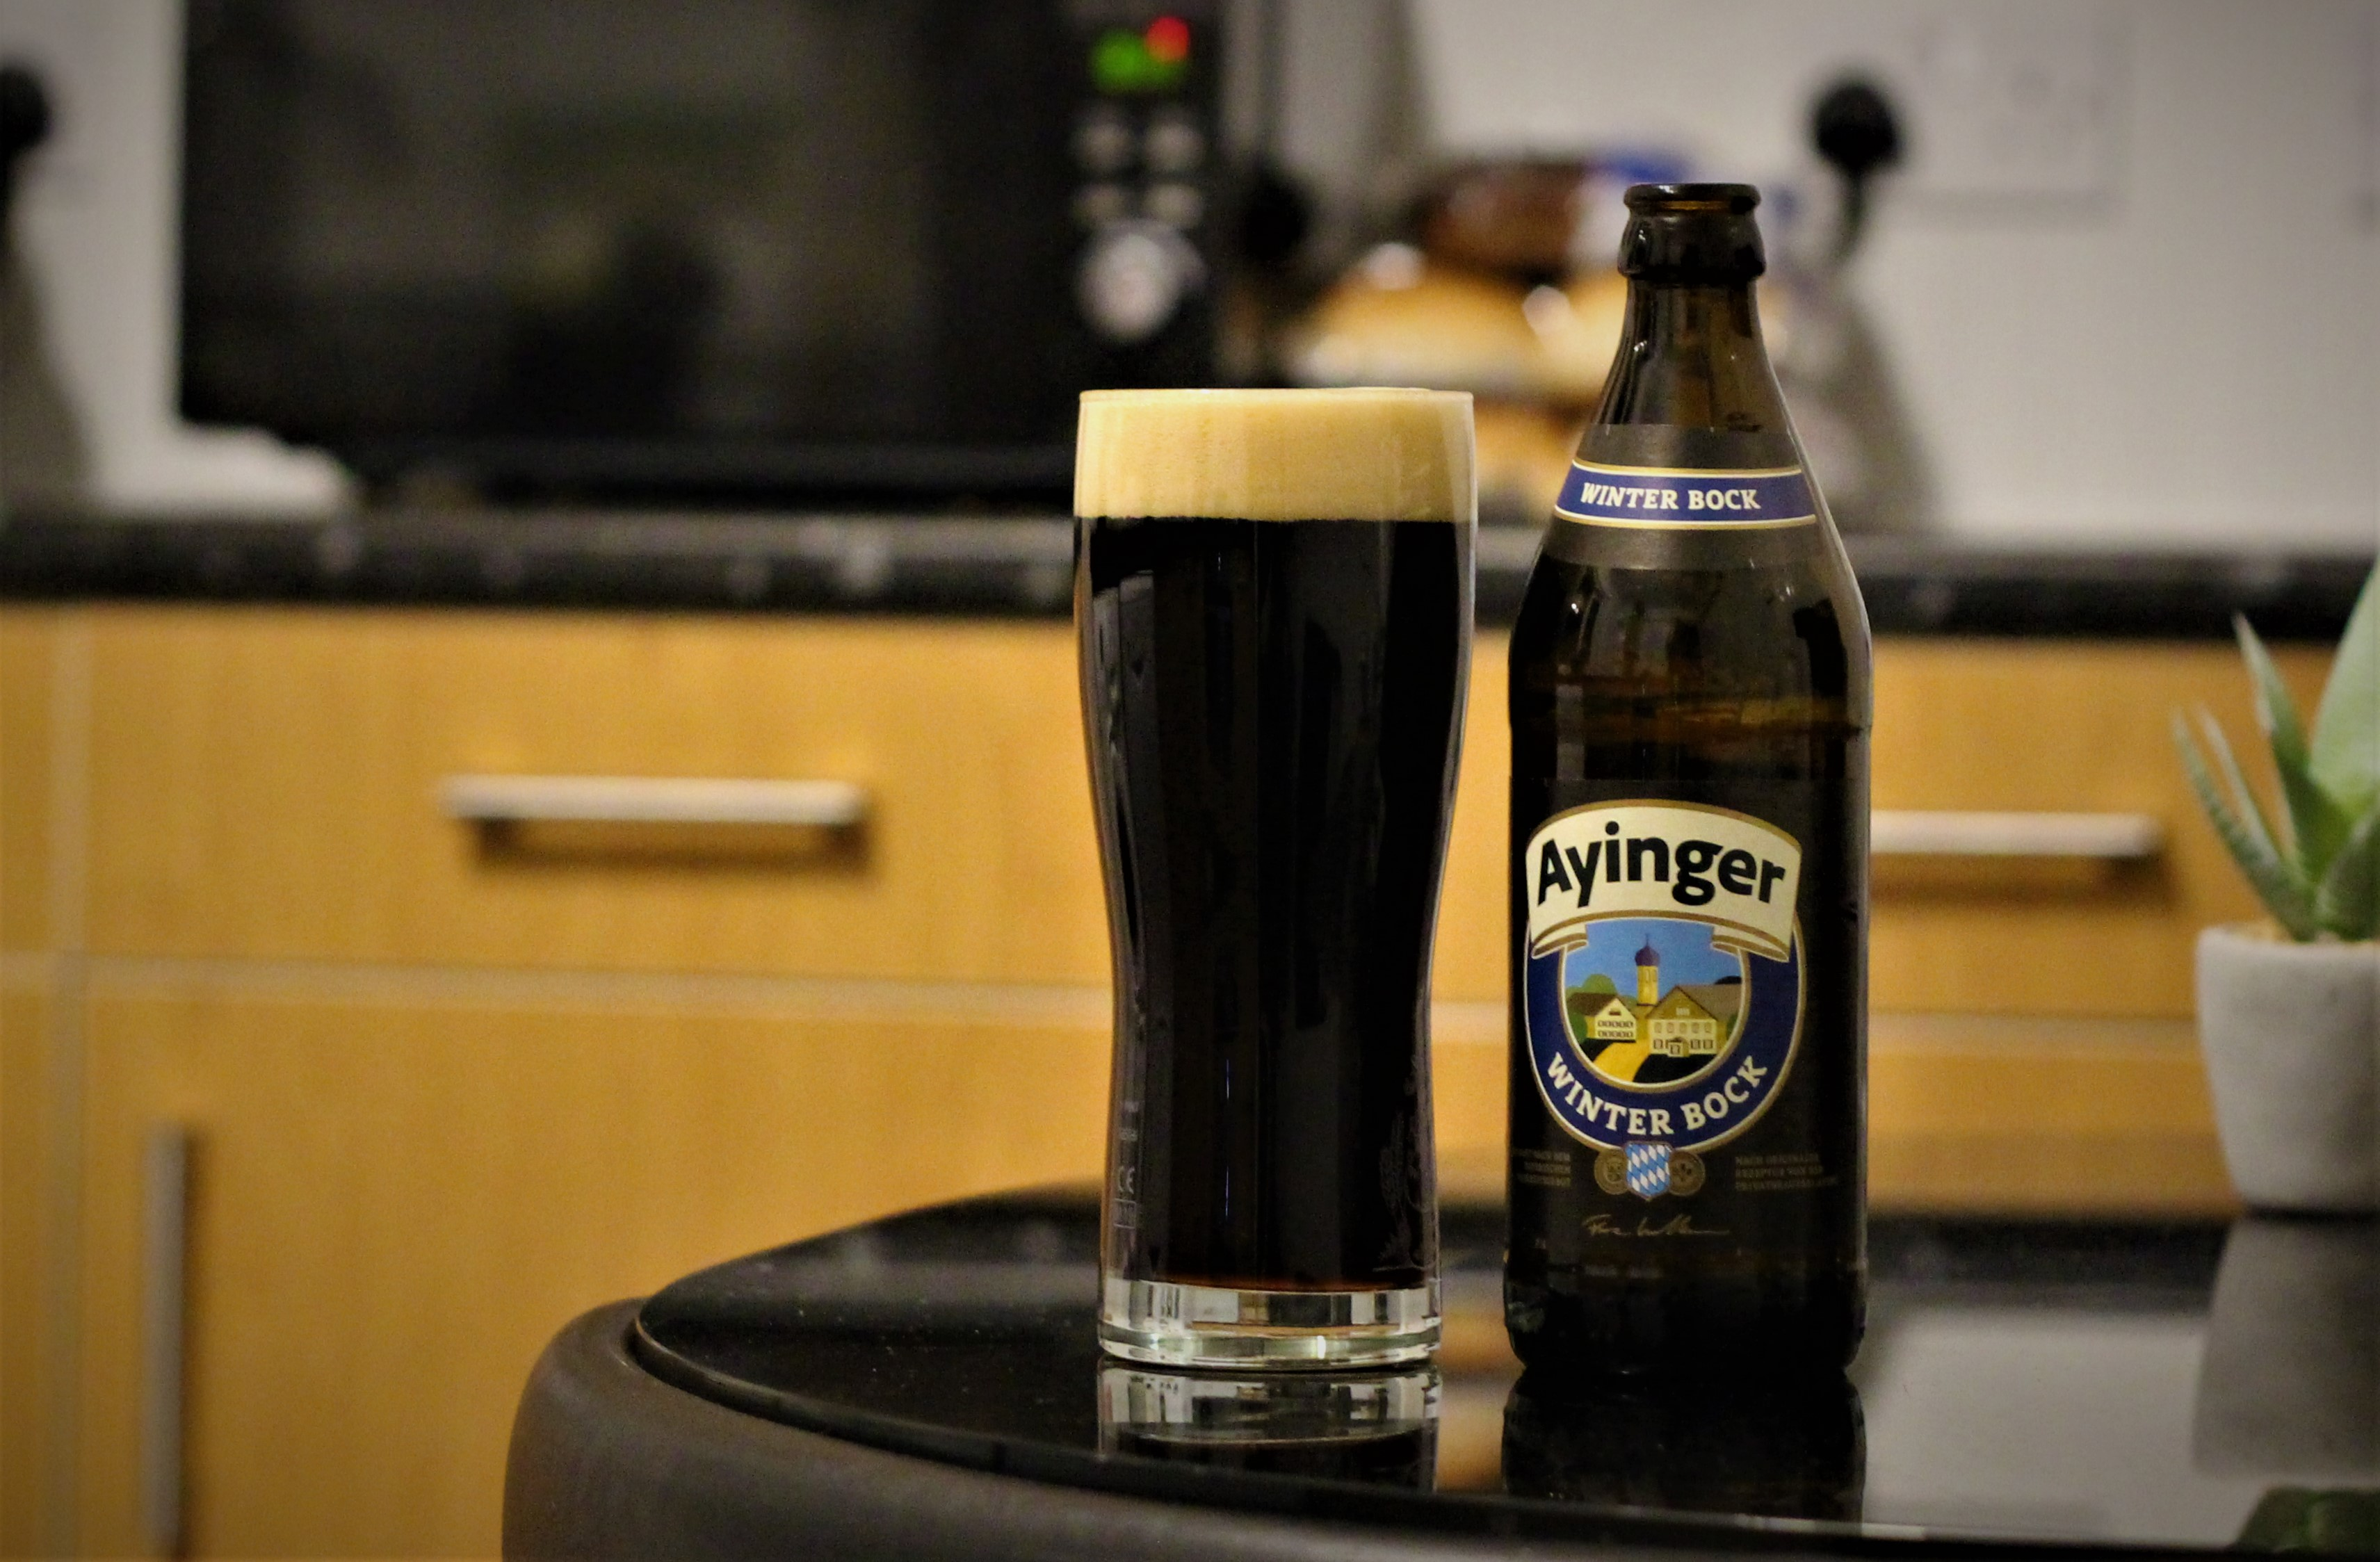 photo of ayinger beer in a glass next to the bottle